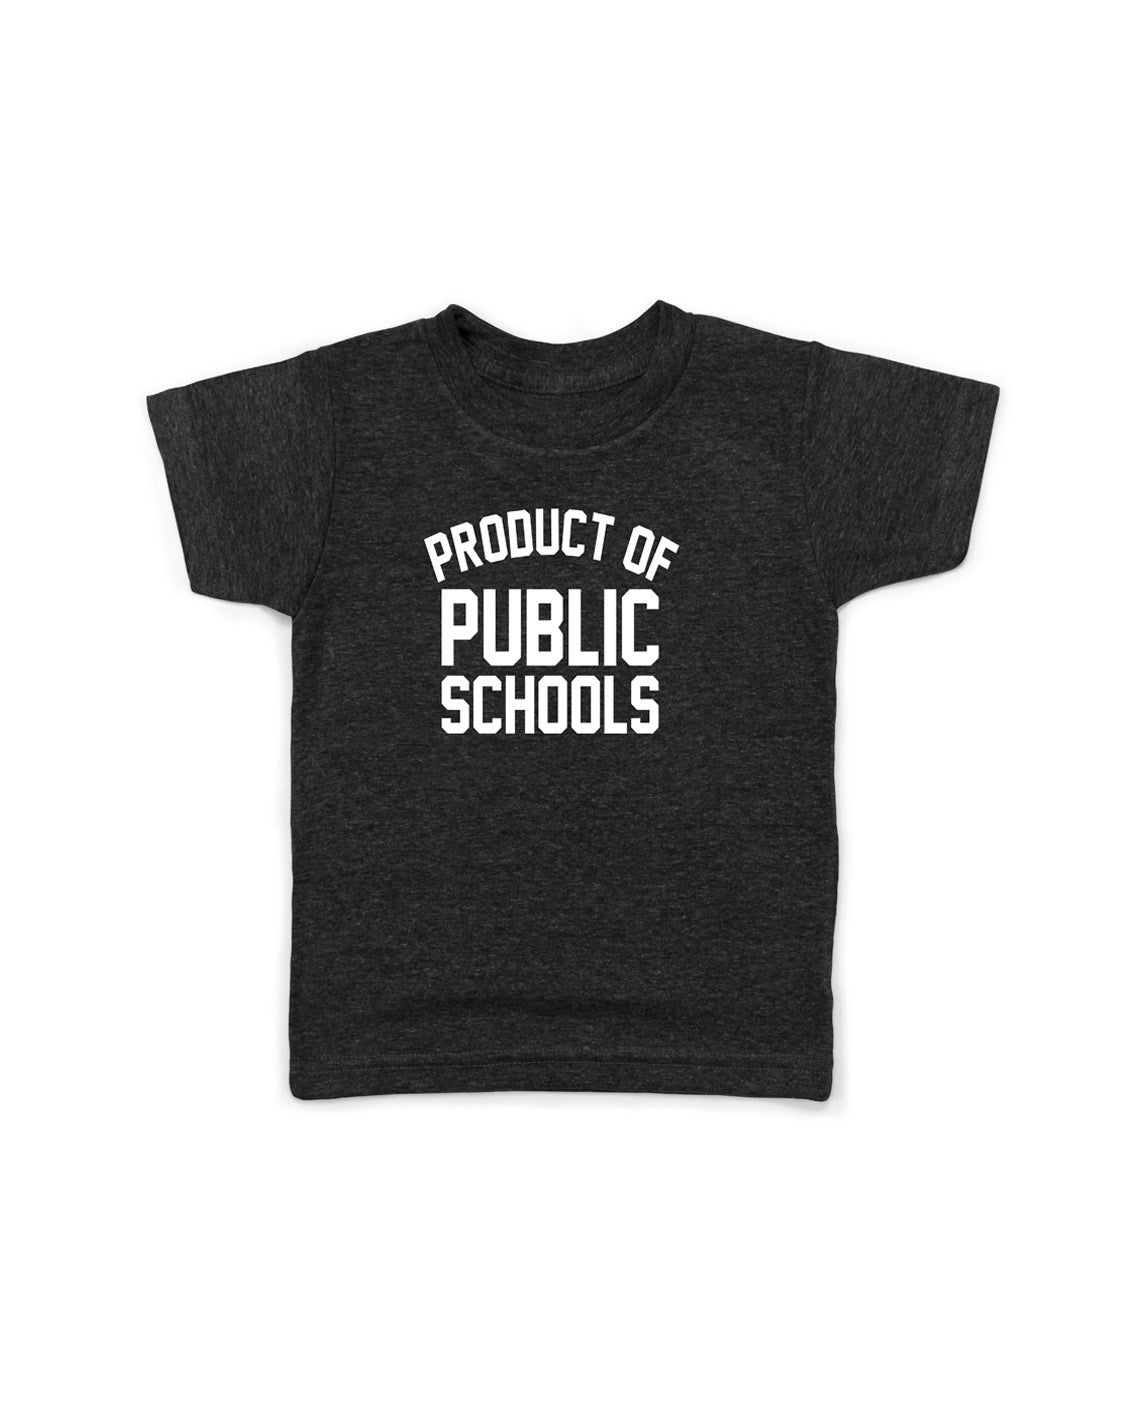 Kids | Product of Public Schools - Originalitees